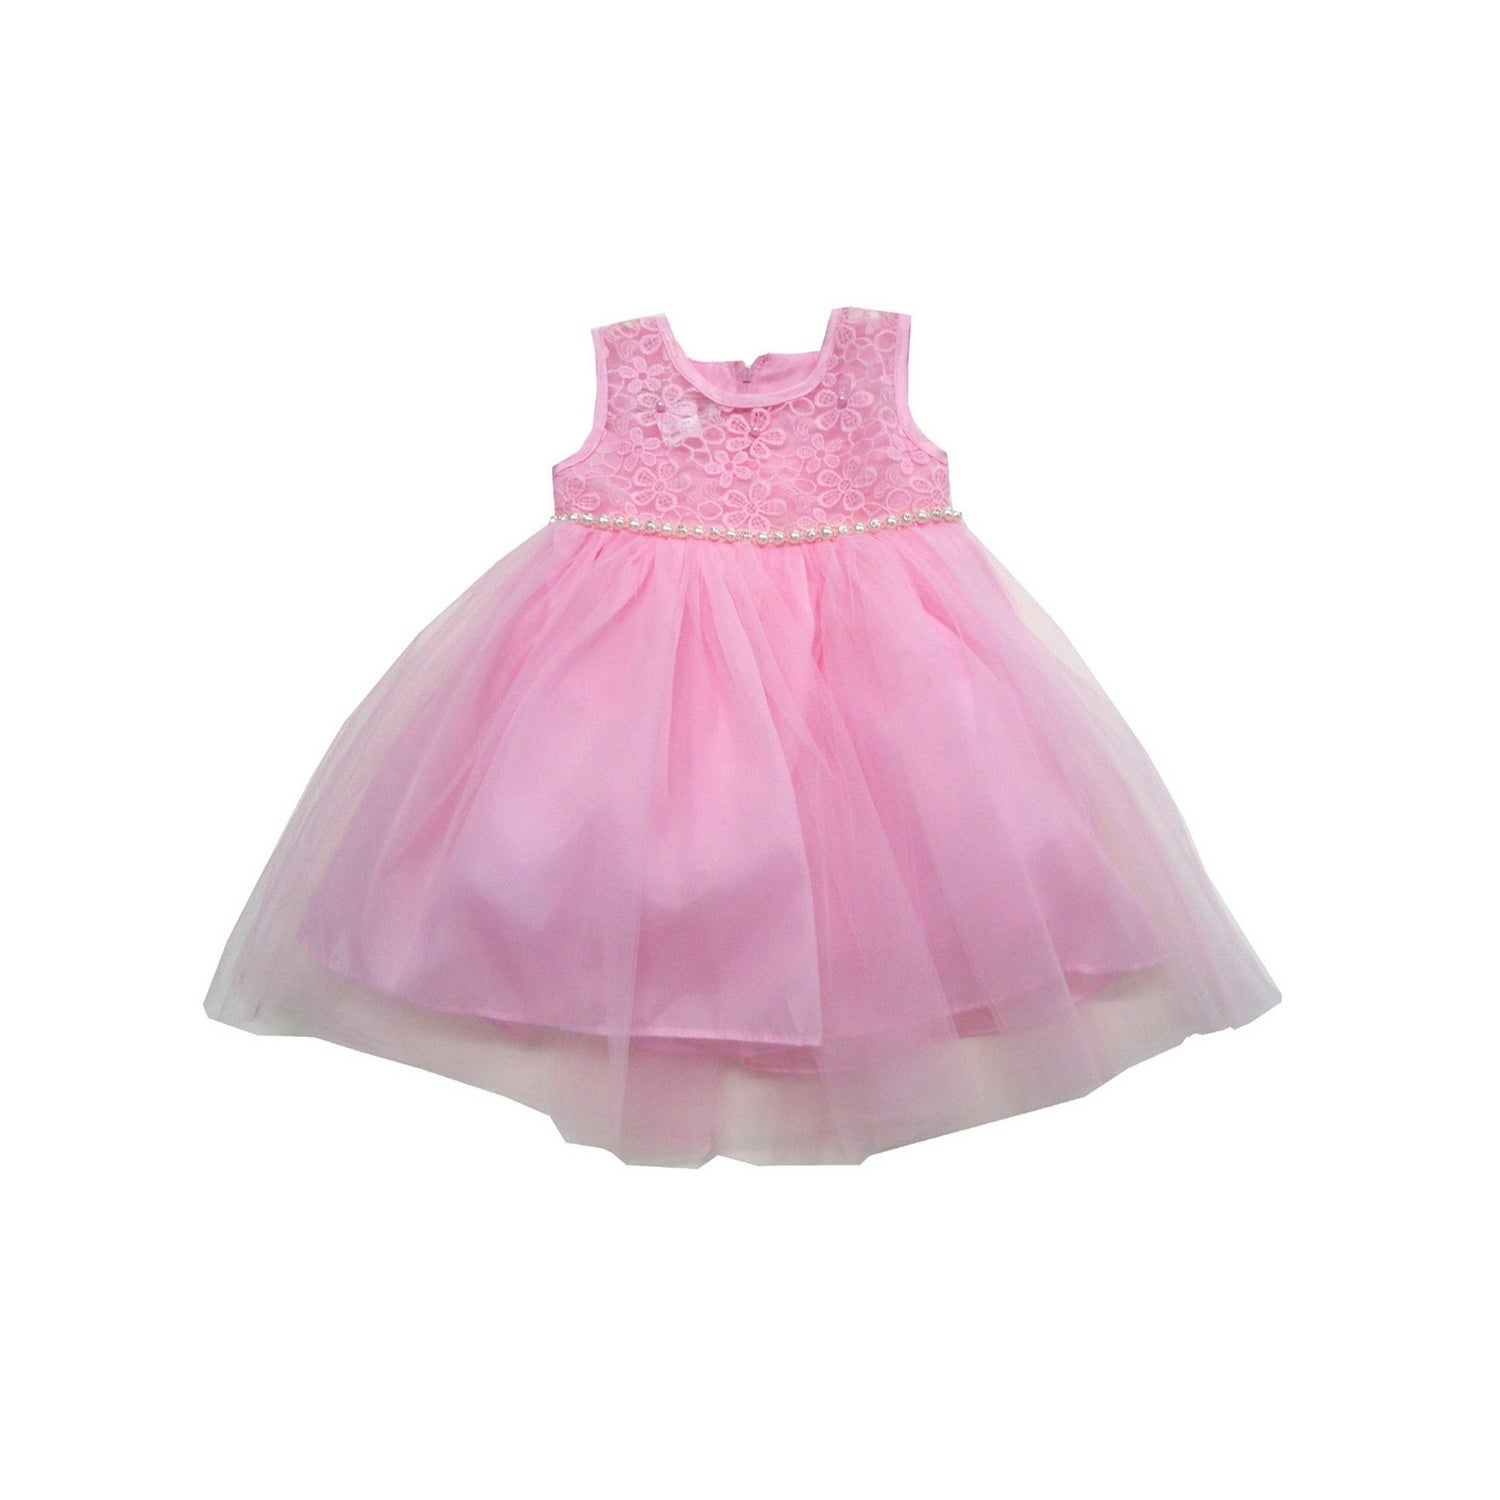 Shop Little Girls Pink Embroidered Tulle Sparkle Trim Flower Girl Dress - Free Shipping On Orders Over $45 - Overstock - 24220785